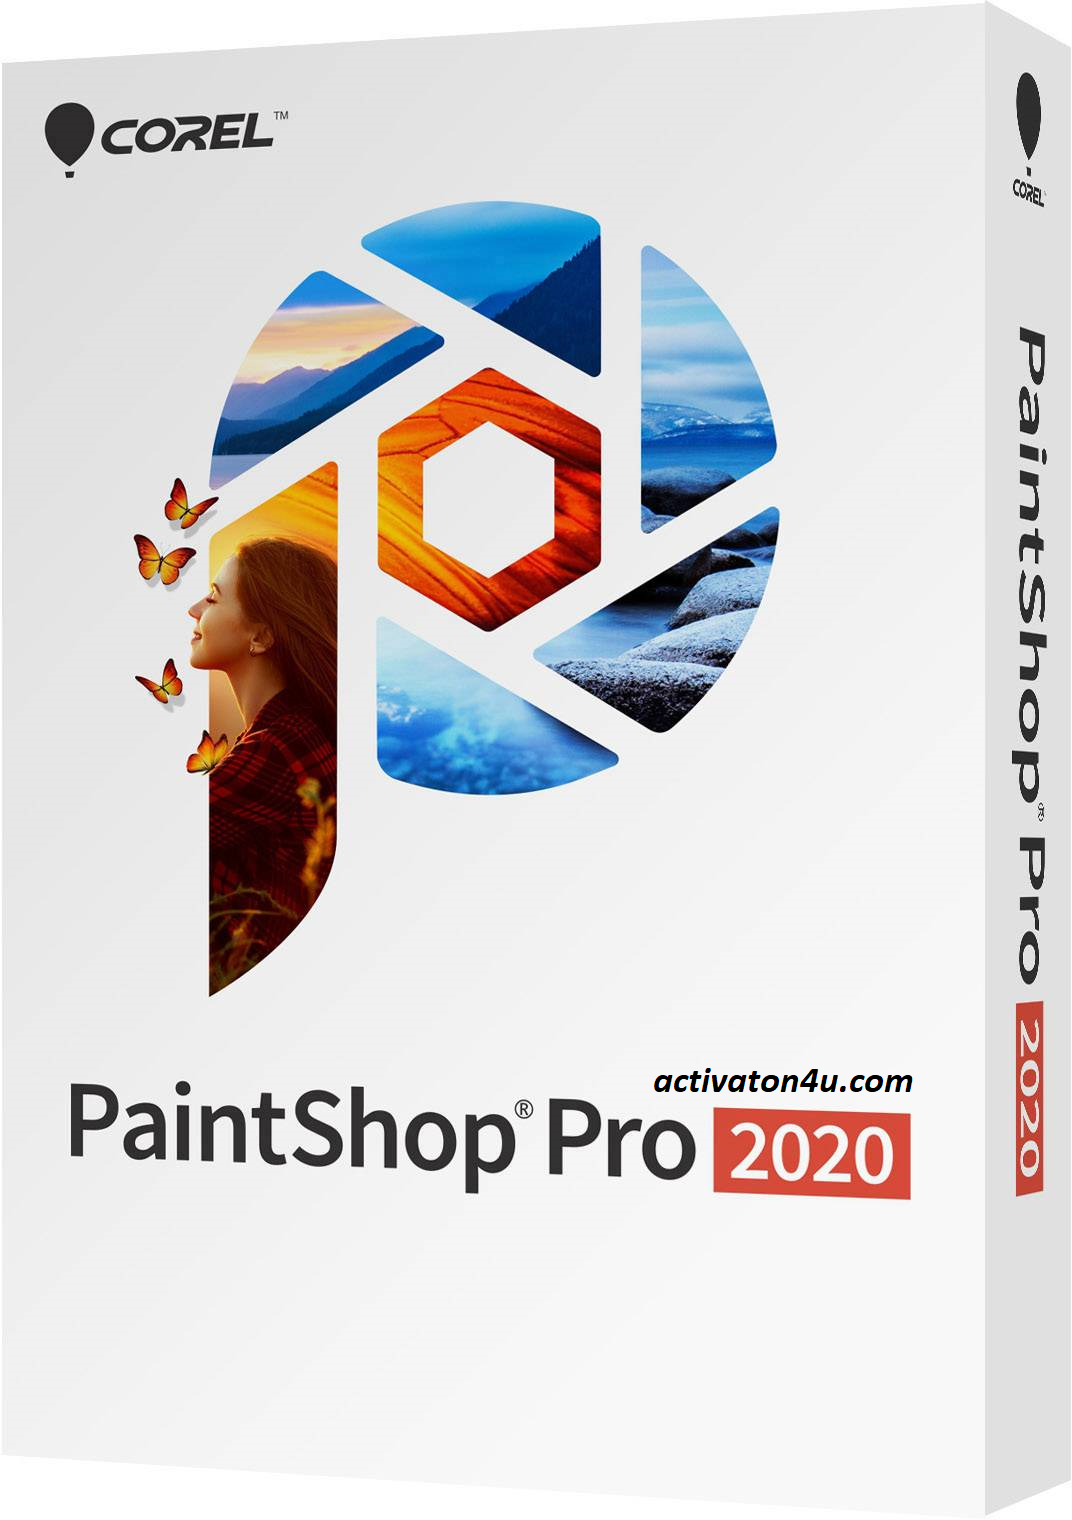 Corel PaintShop Pro 2020 v22.2.0.8 Crack Free Download